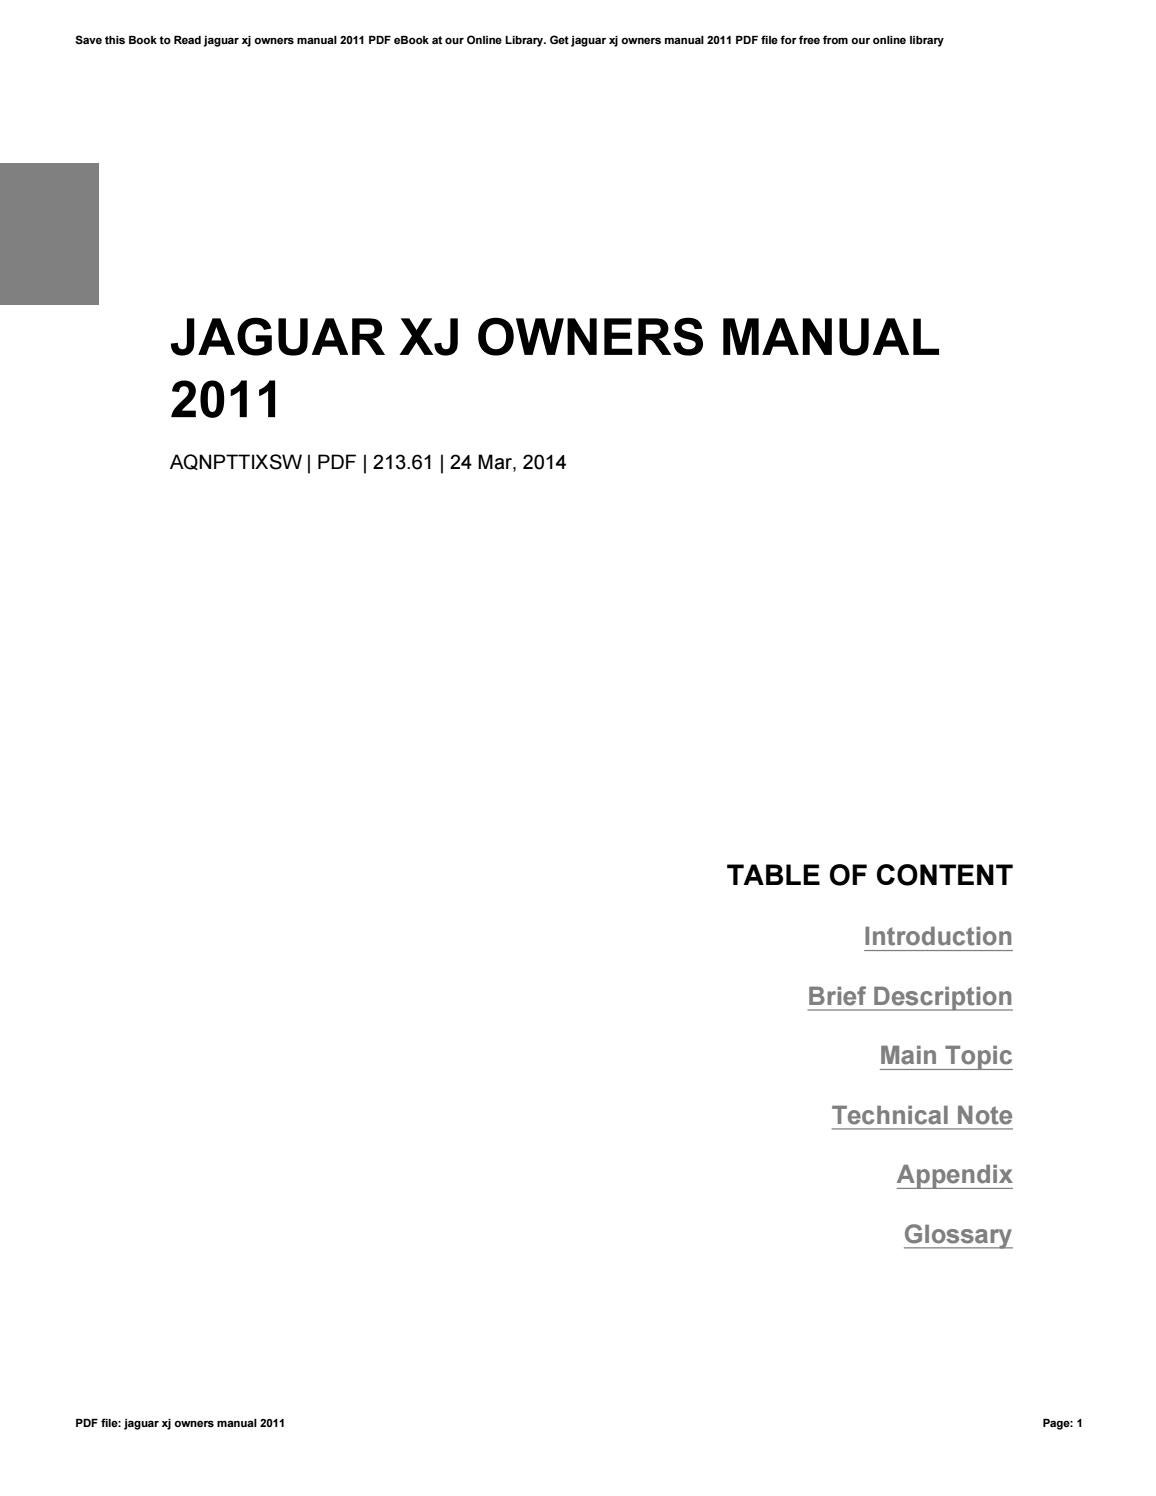 Jaguar Xj 2011 Owners Manual